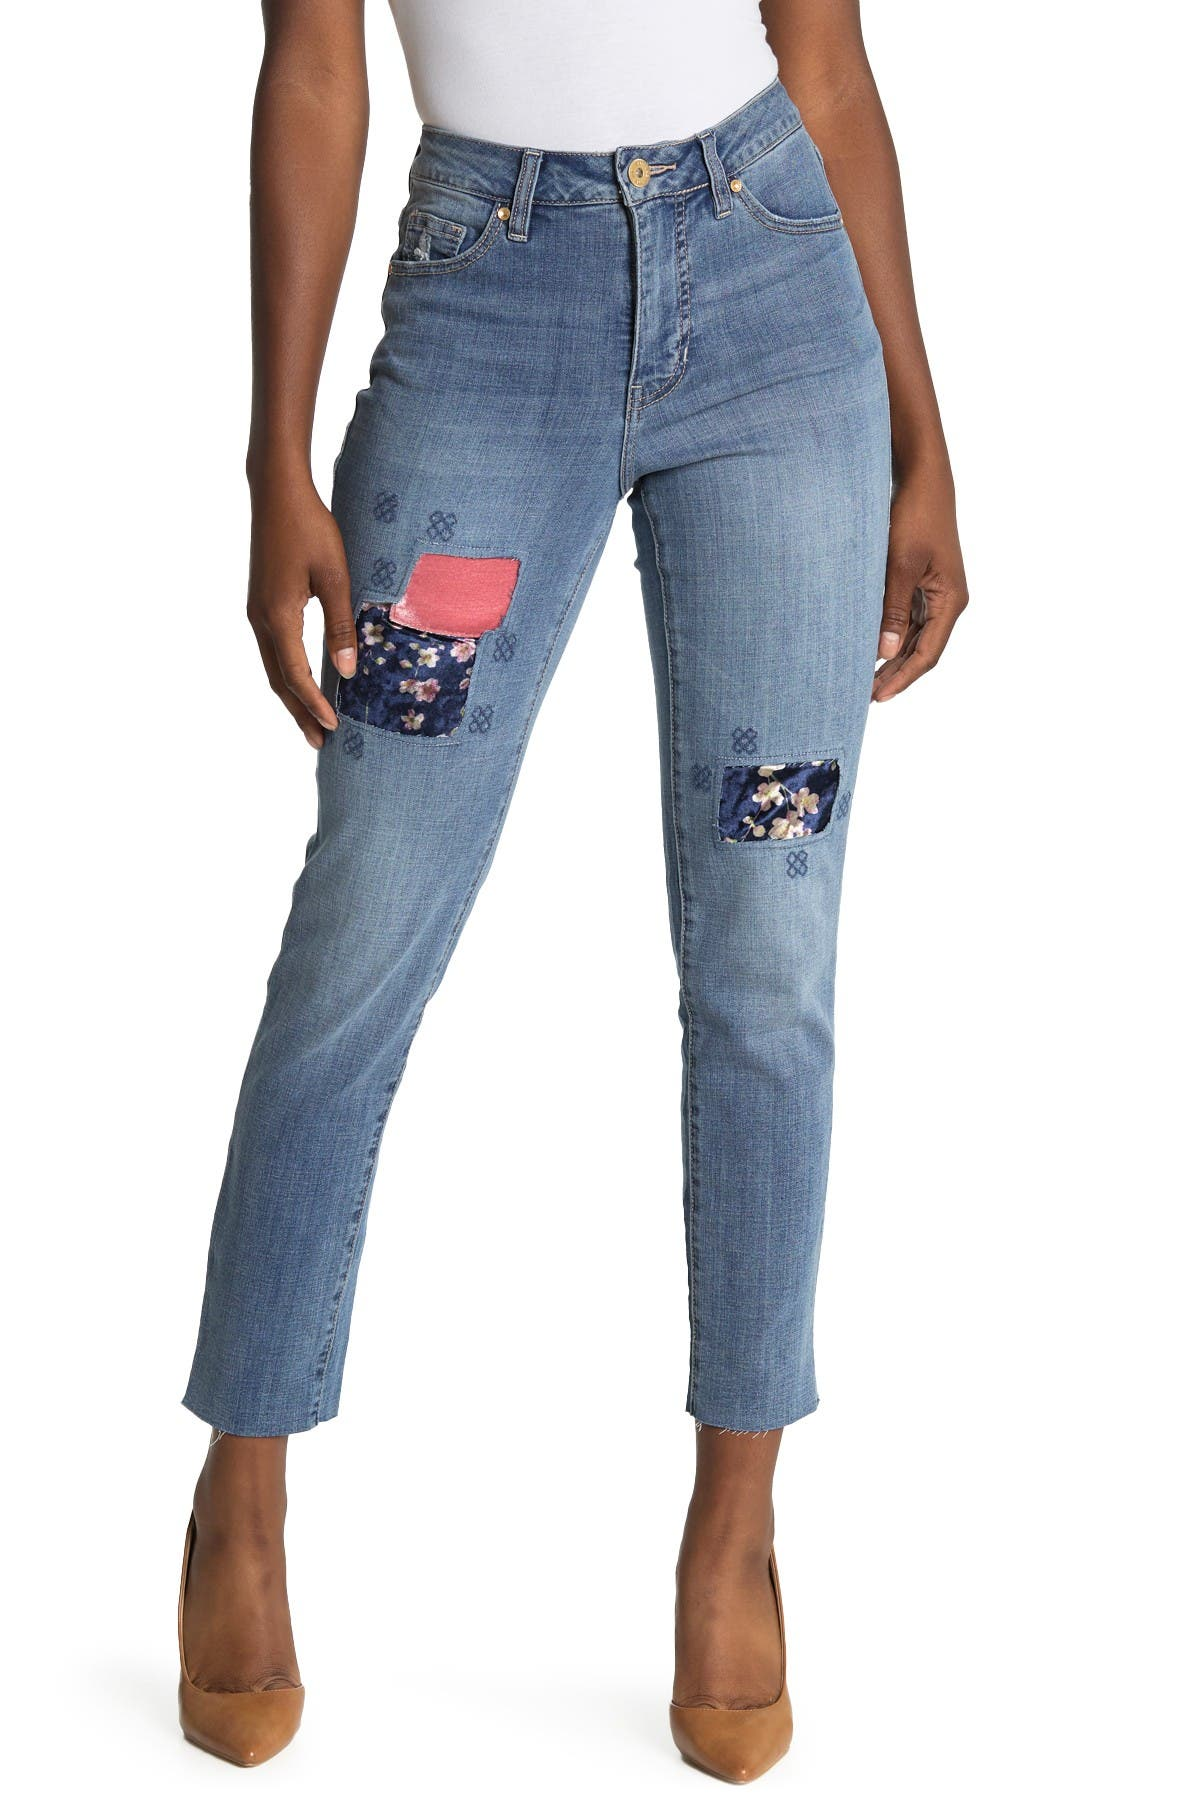 Image of JAG Jeans Reese Vintage Straight Leg Jeans